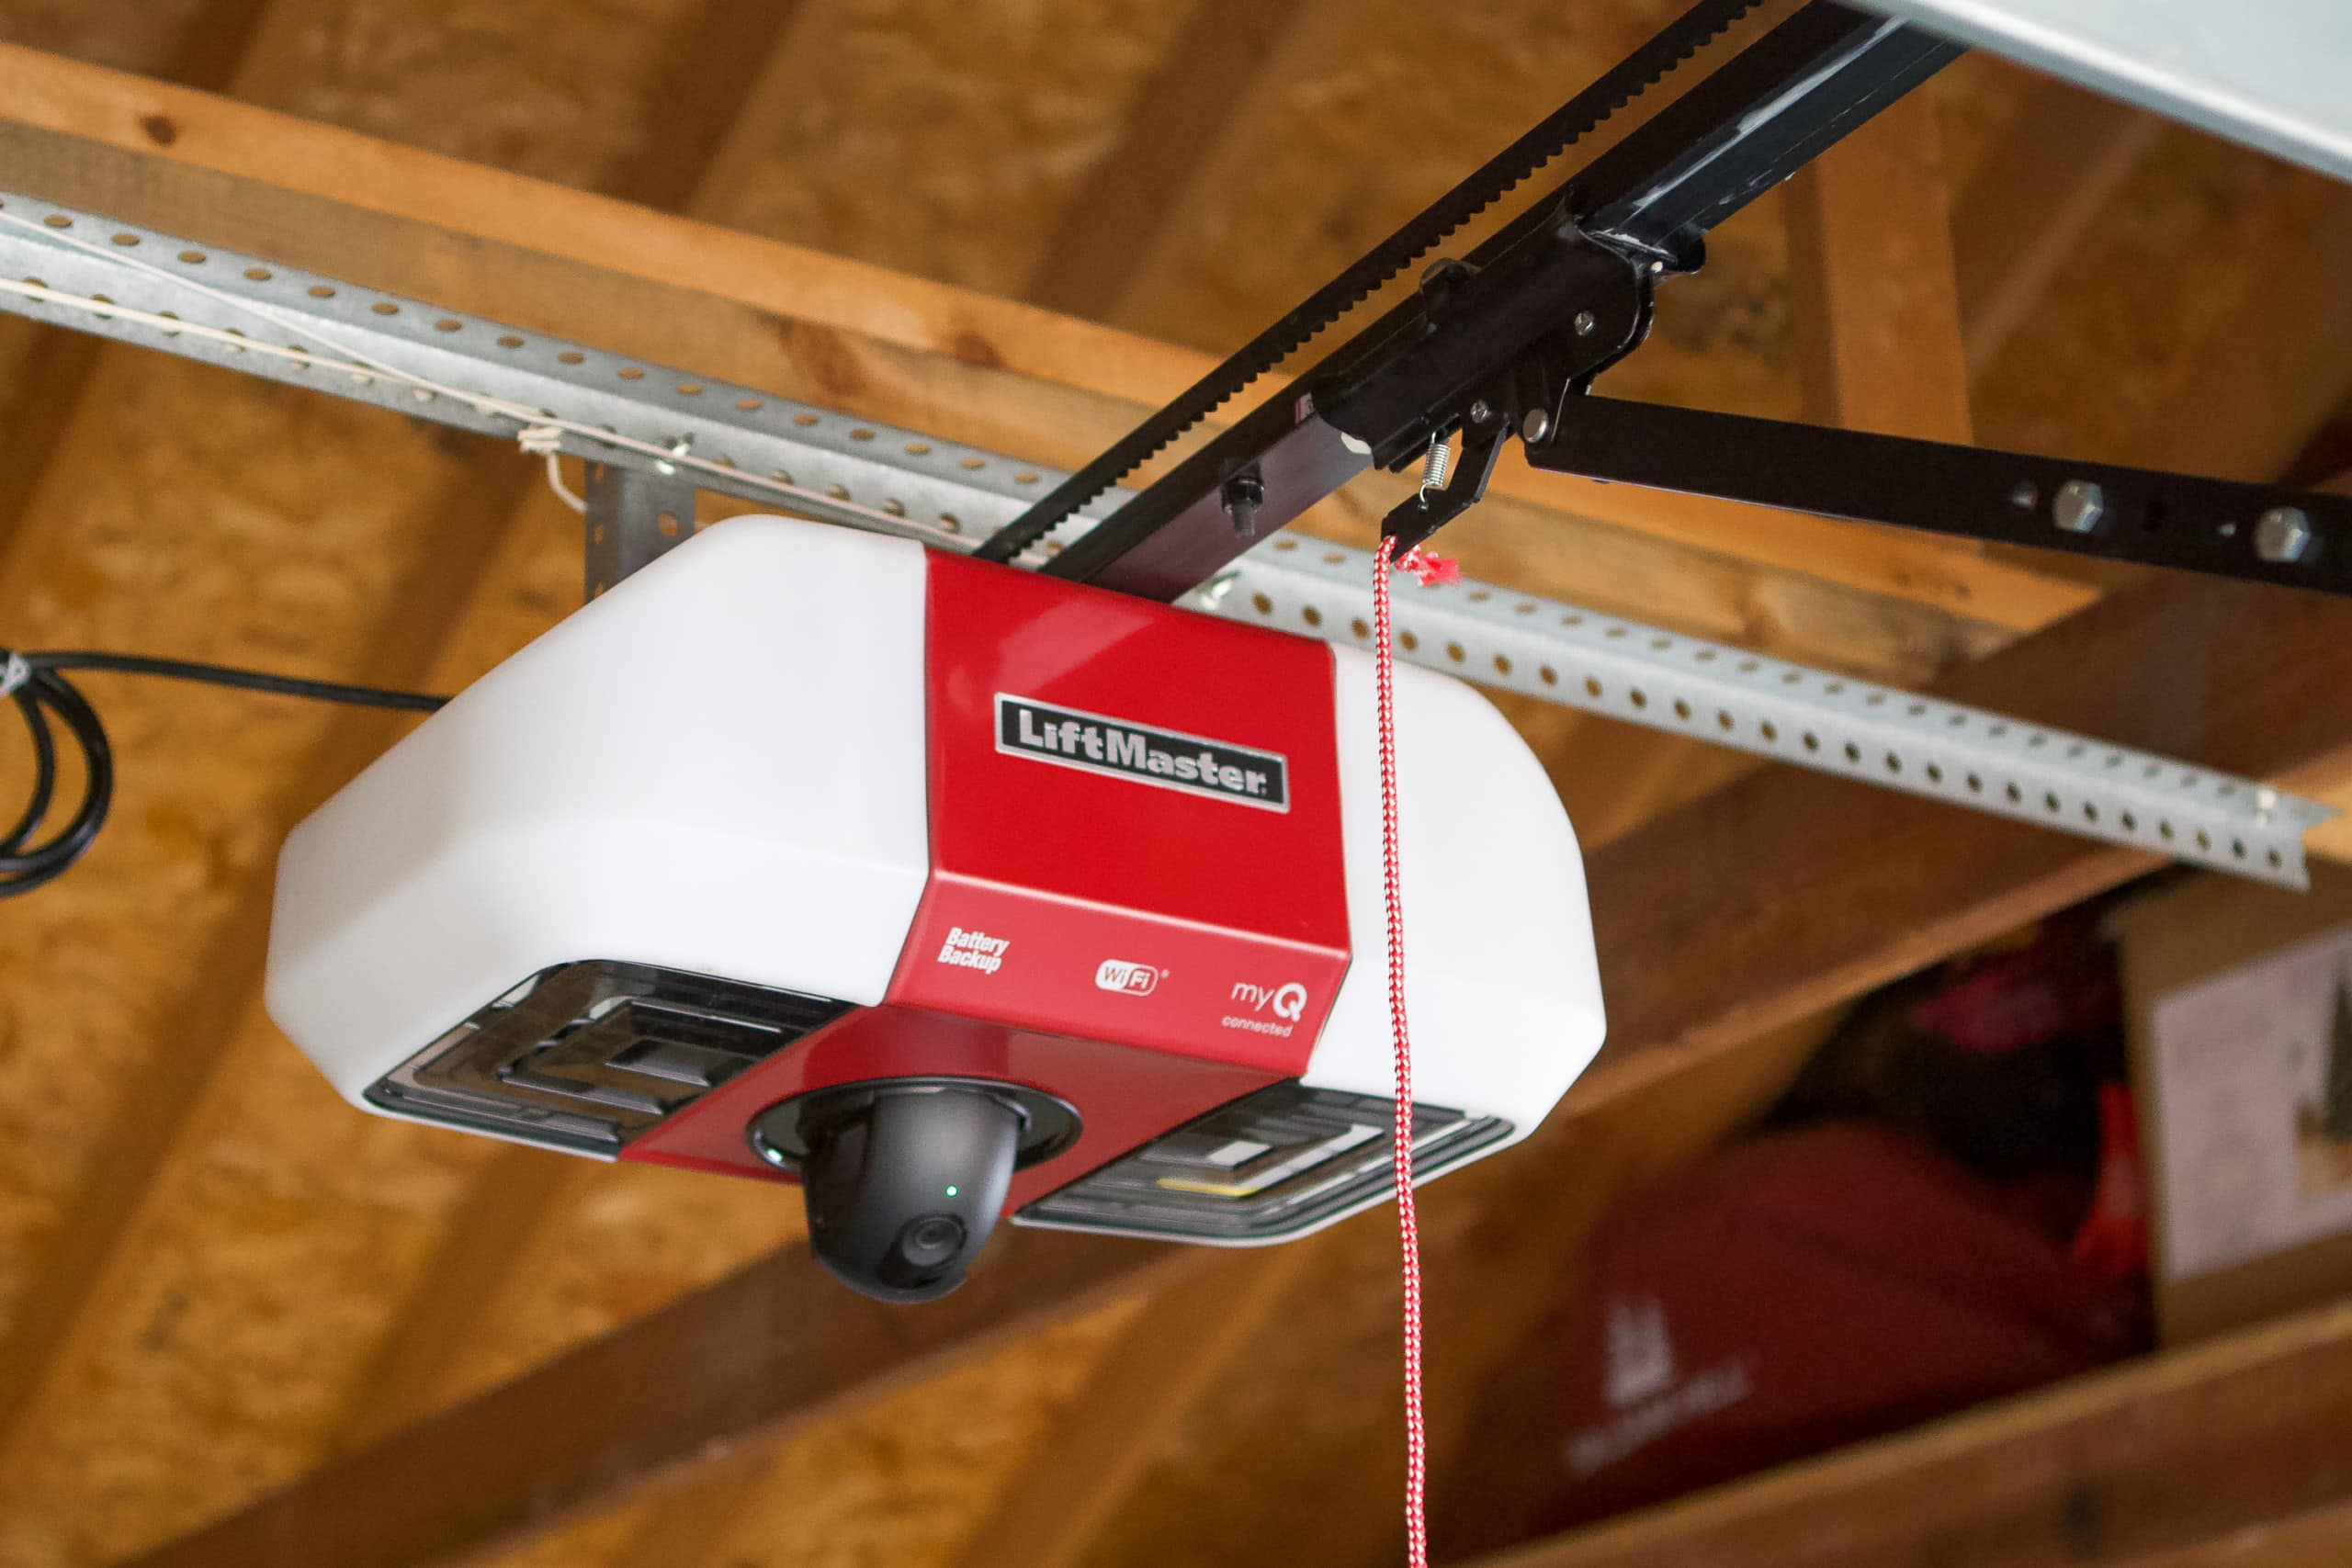 Liftmaster smart garage door opener